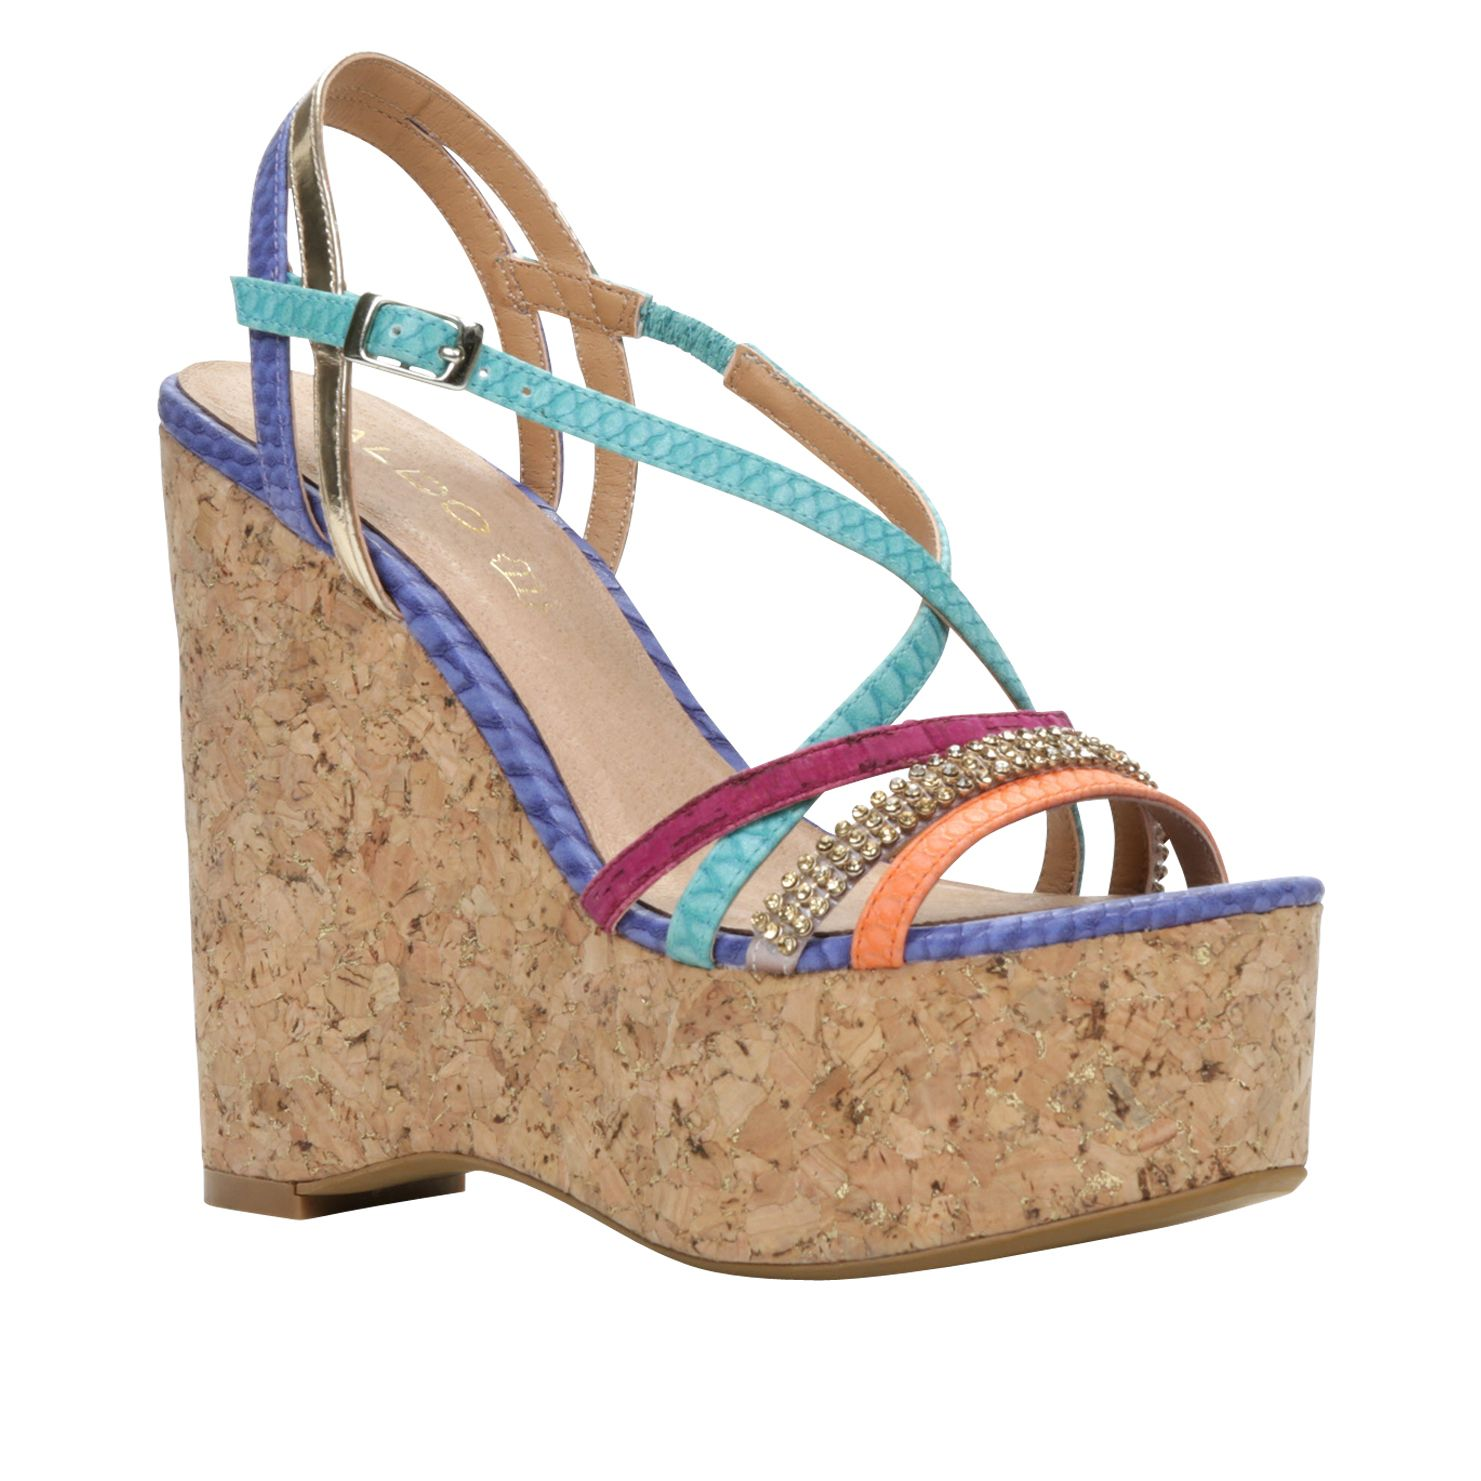 Otava wedge strap sandals